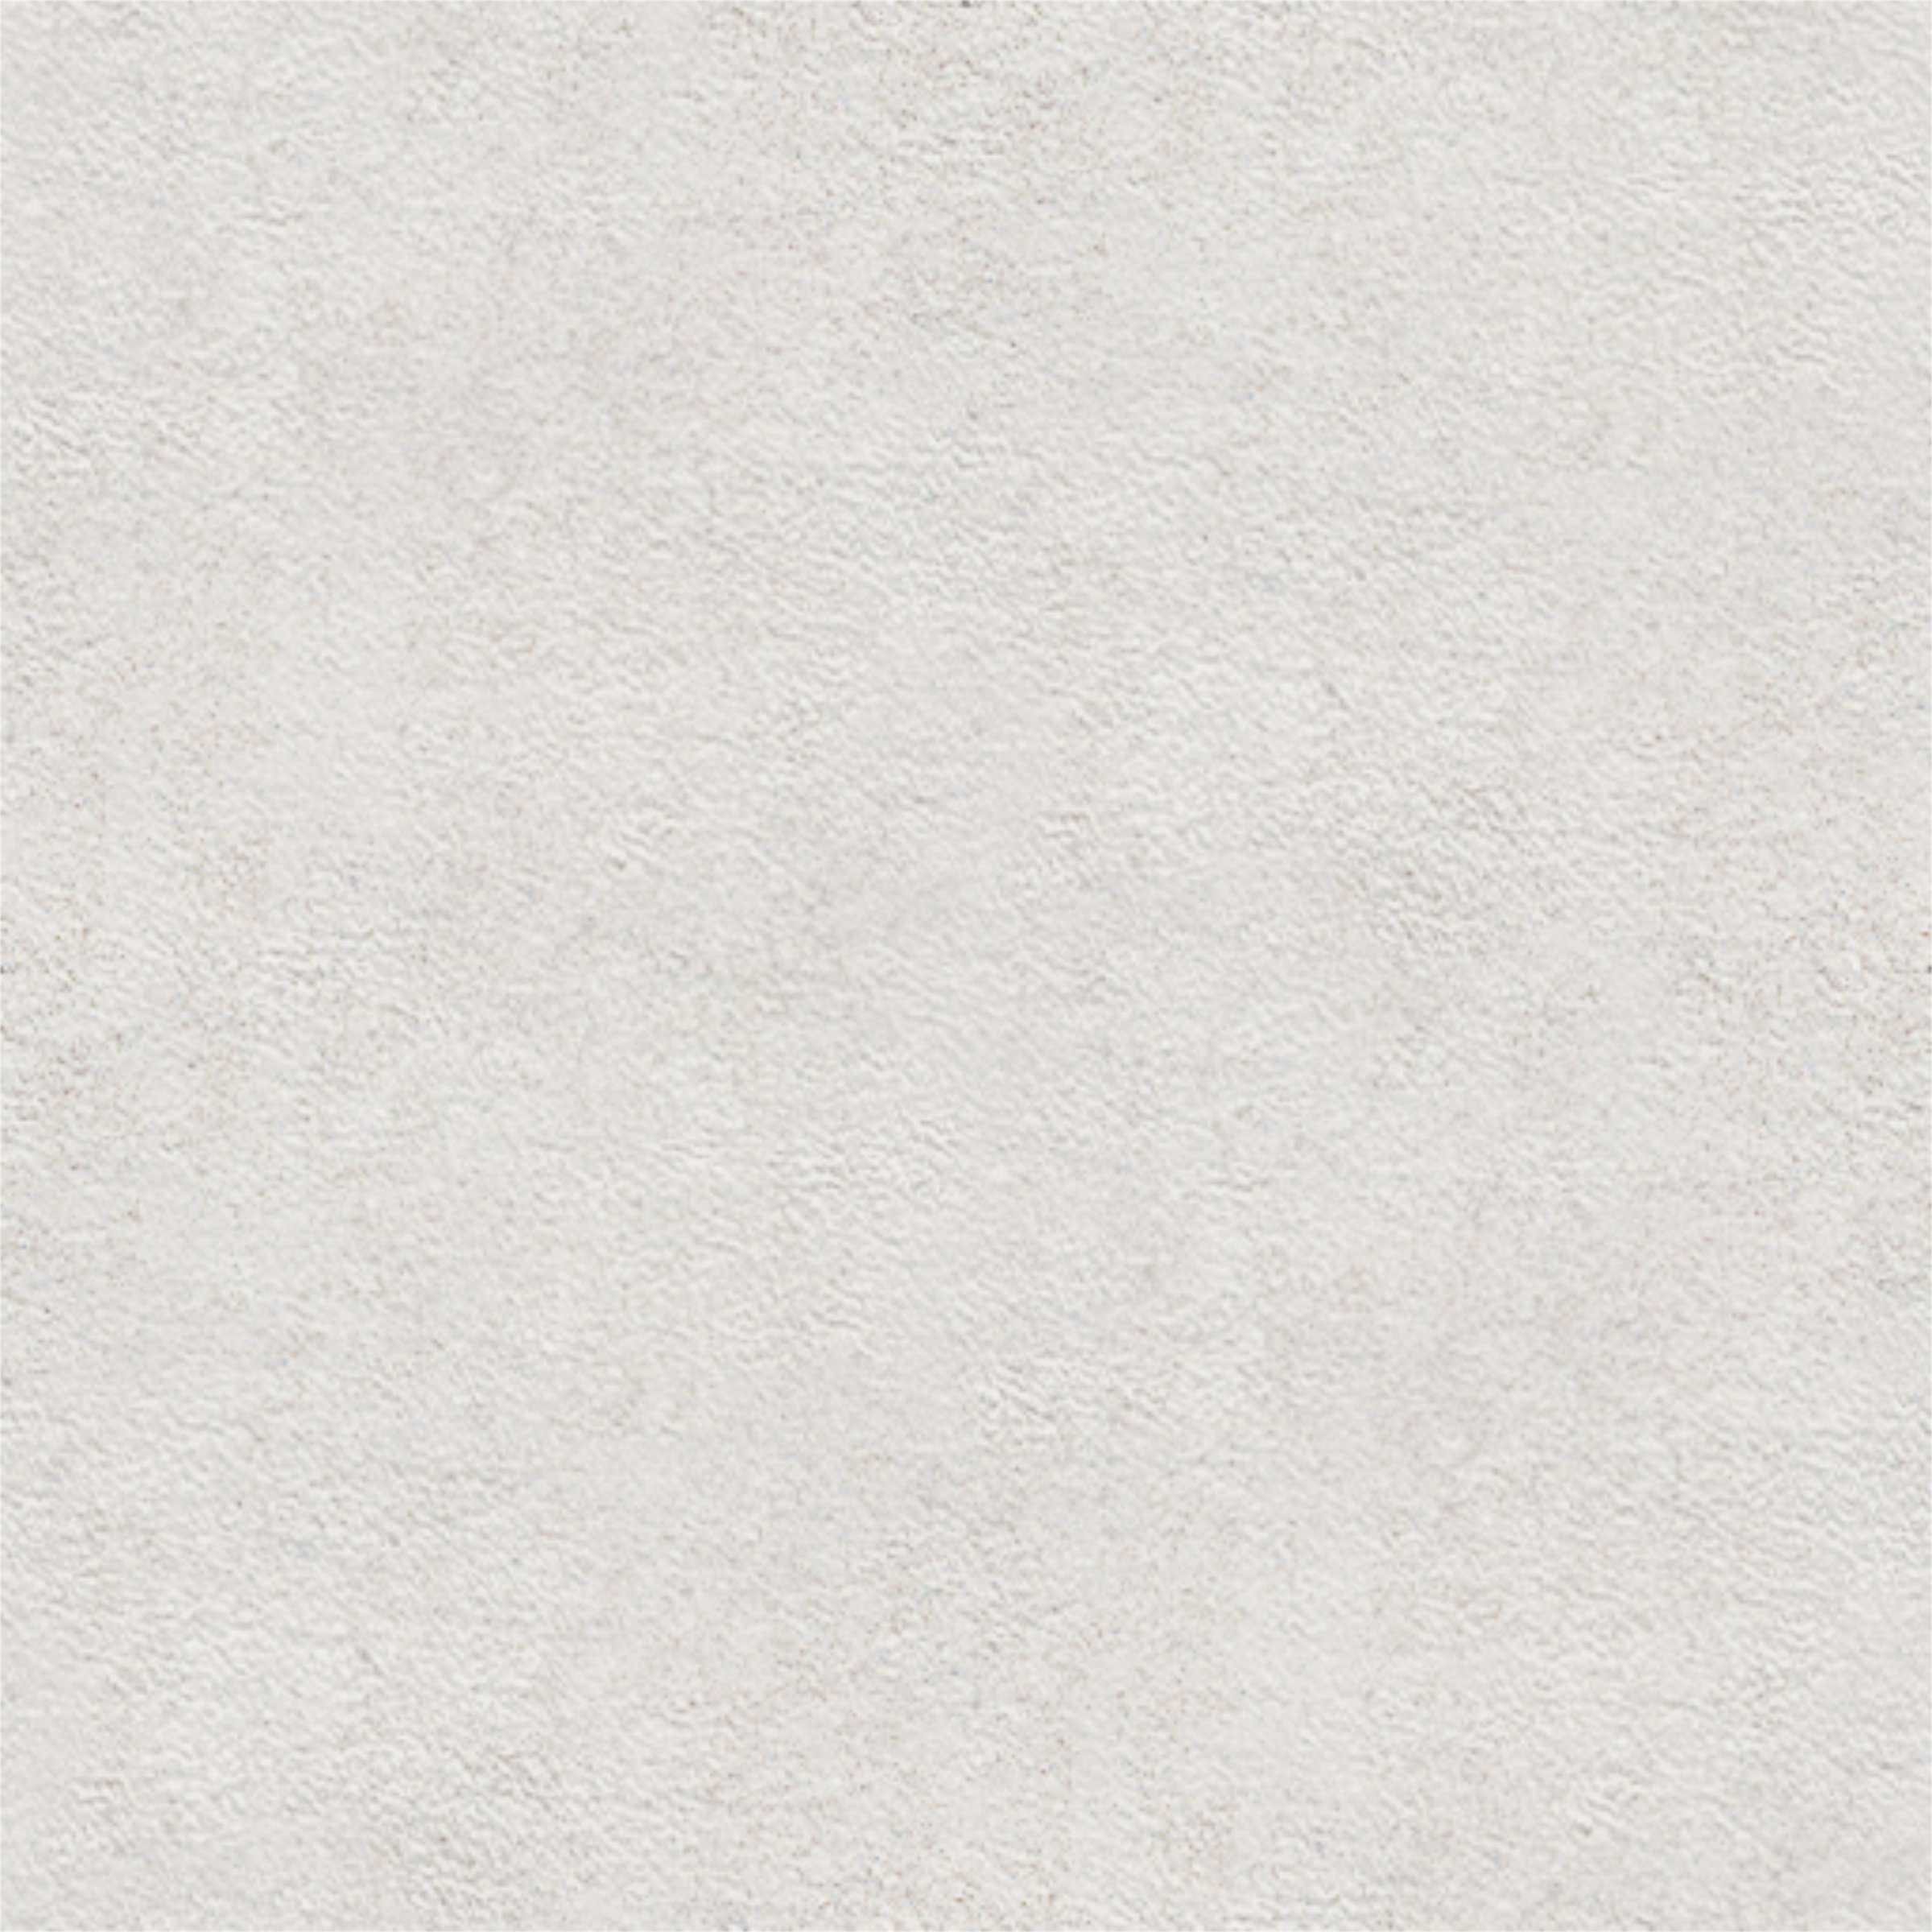 Wall Painted White Icons PNG - Free PNG and Icons Downloads